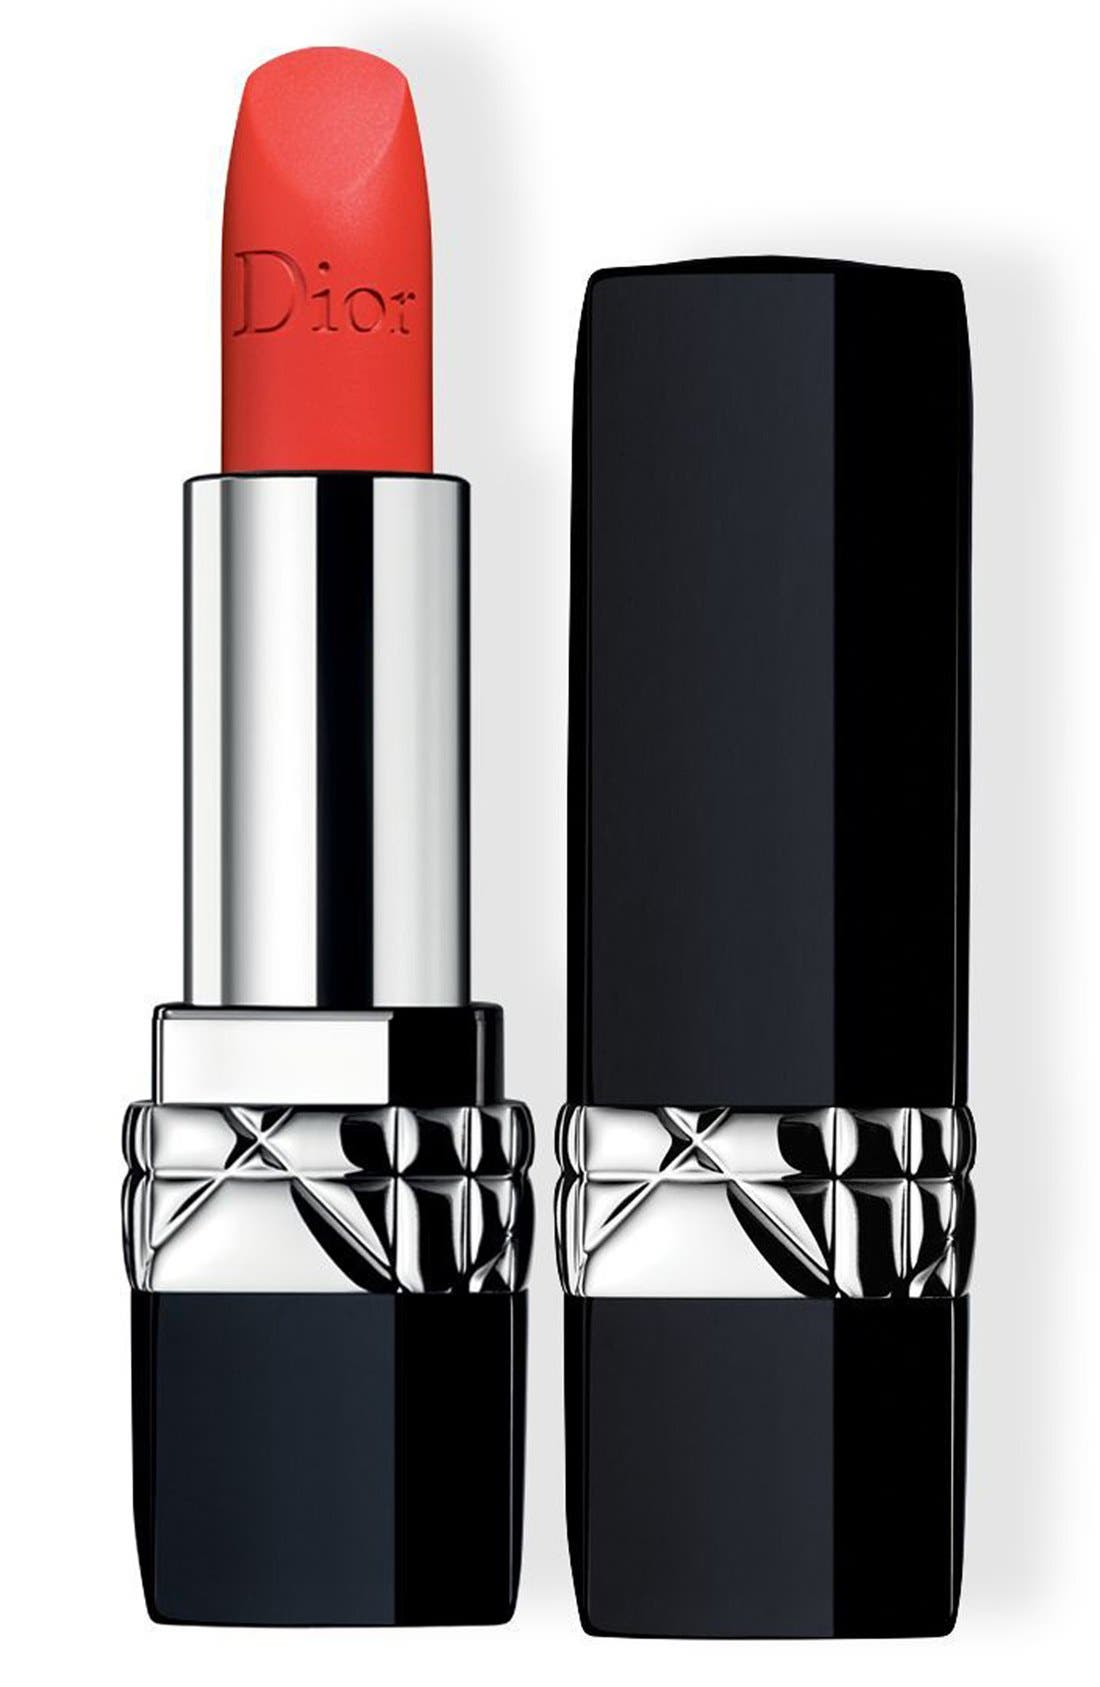 Dior Couture Color Rouge Dior Lipstick - 634 Strong Matte